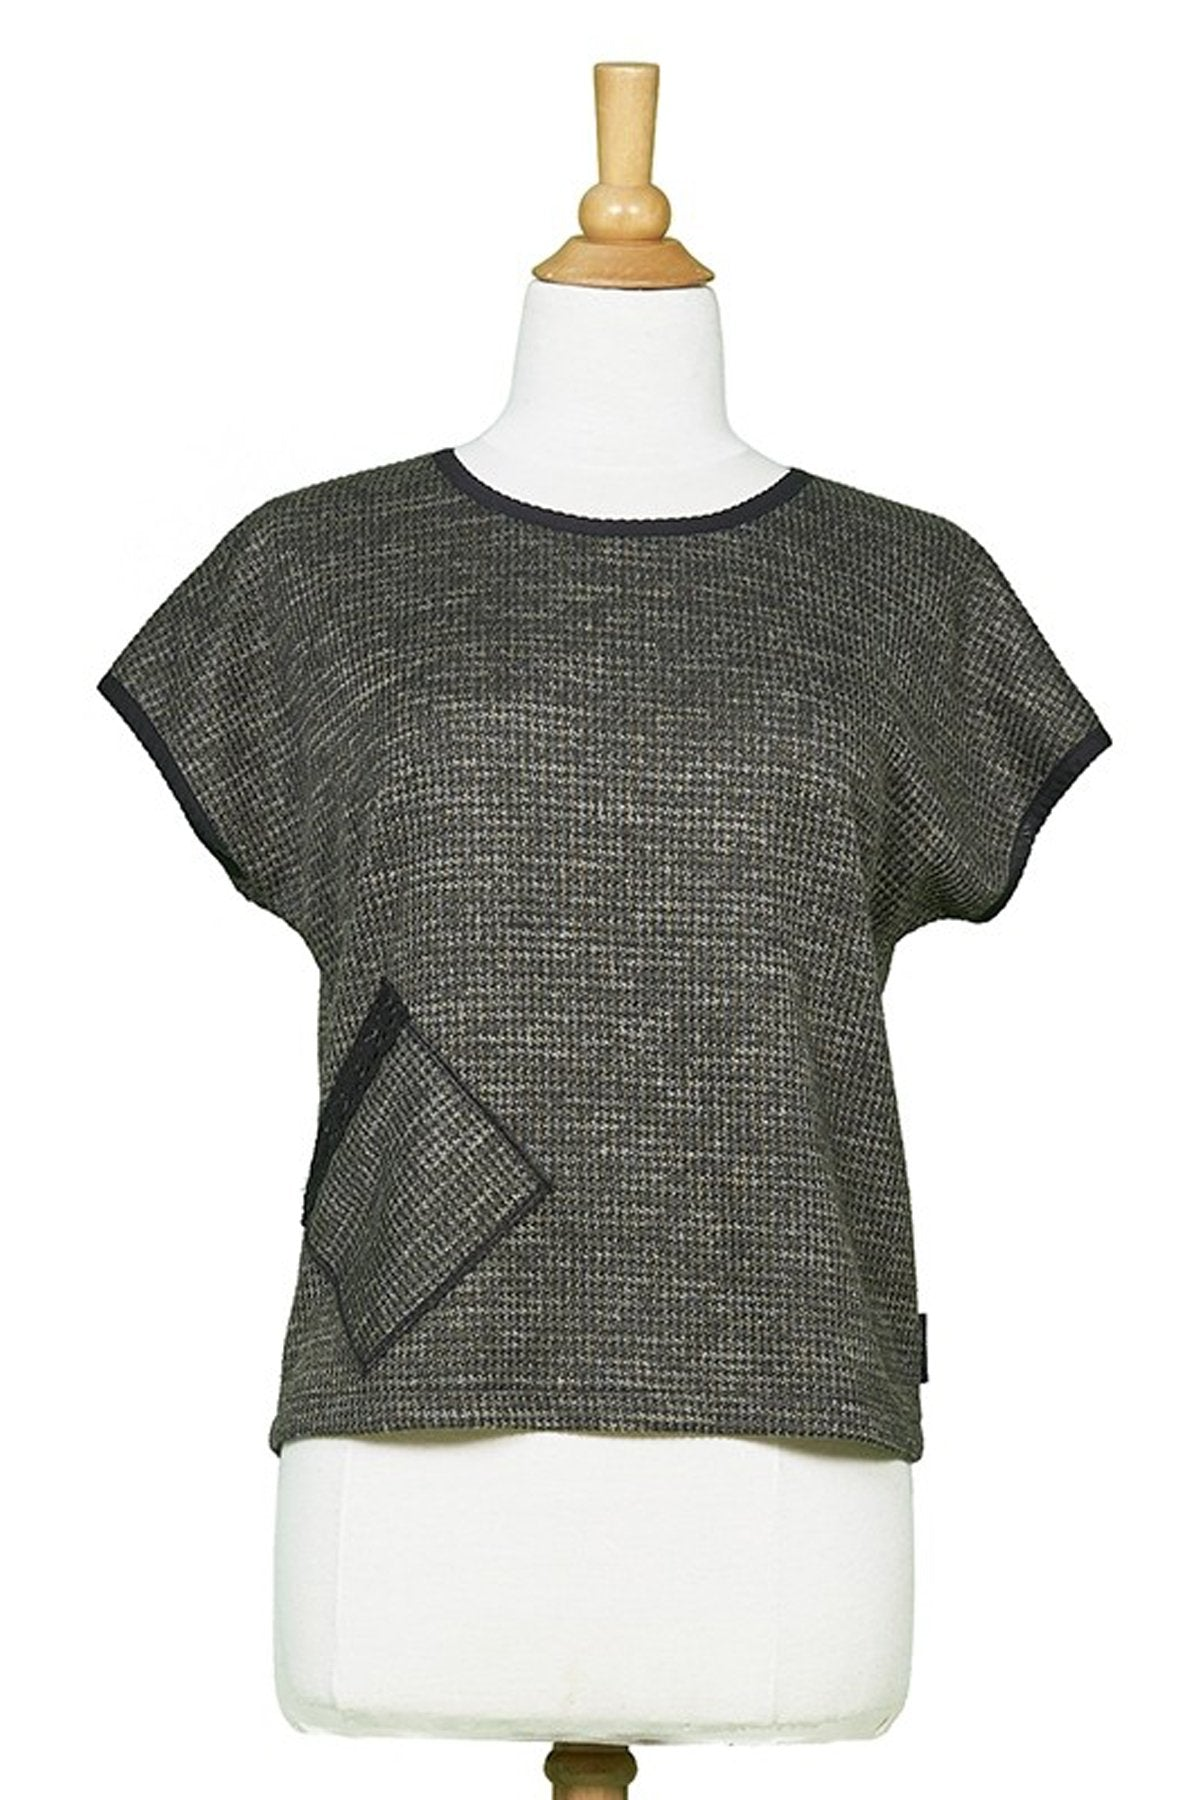 Yukon Top by Rien ne se Perd Tout se Cree, Khaki, front view on mannequin,short sleeves, sweater, diagonal front pocket, sizes XS-XXL, made in Quebec